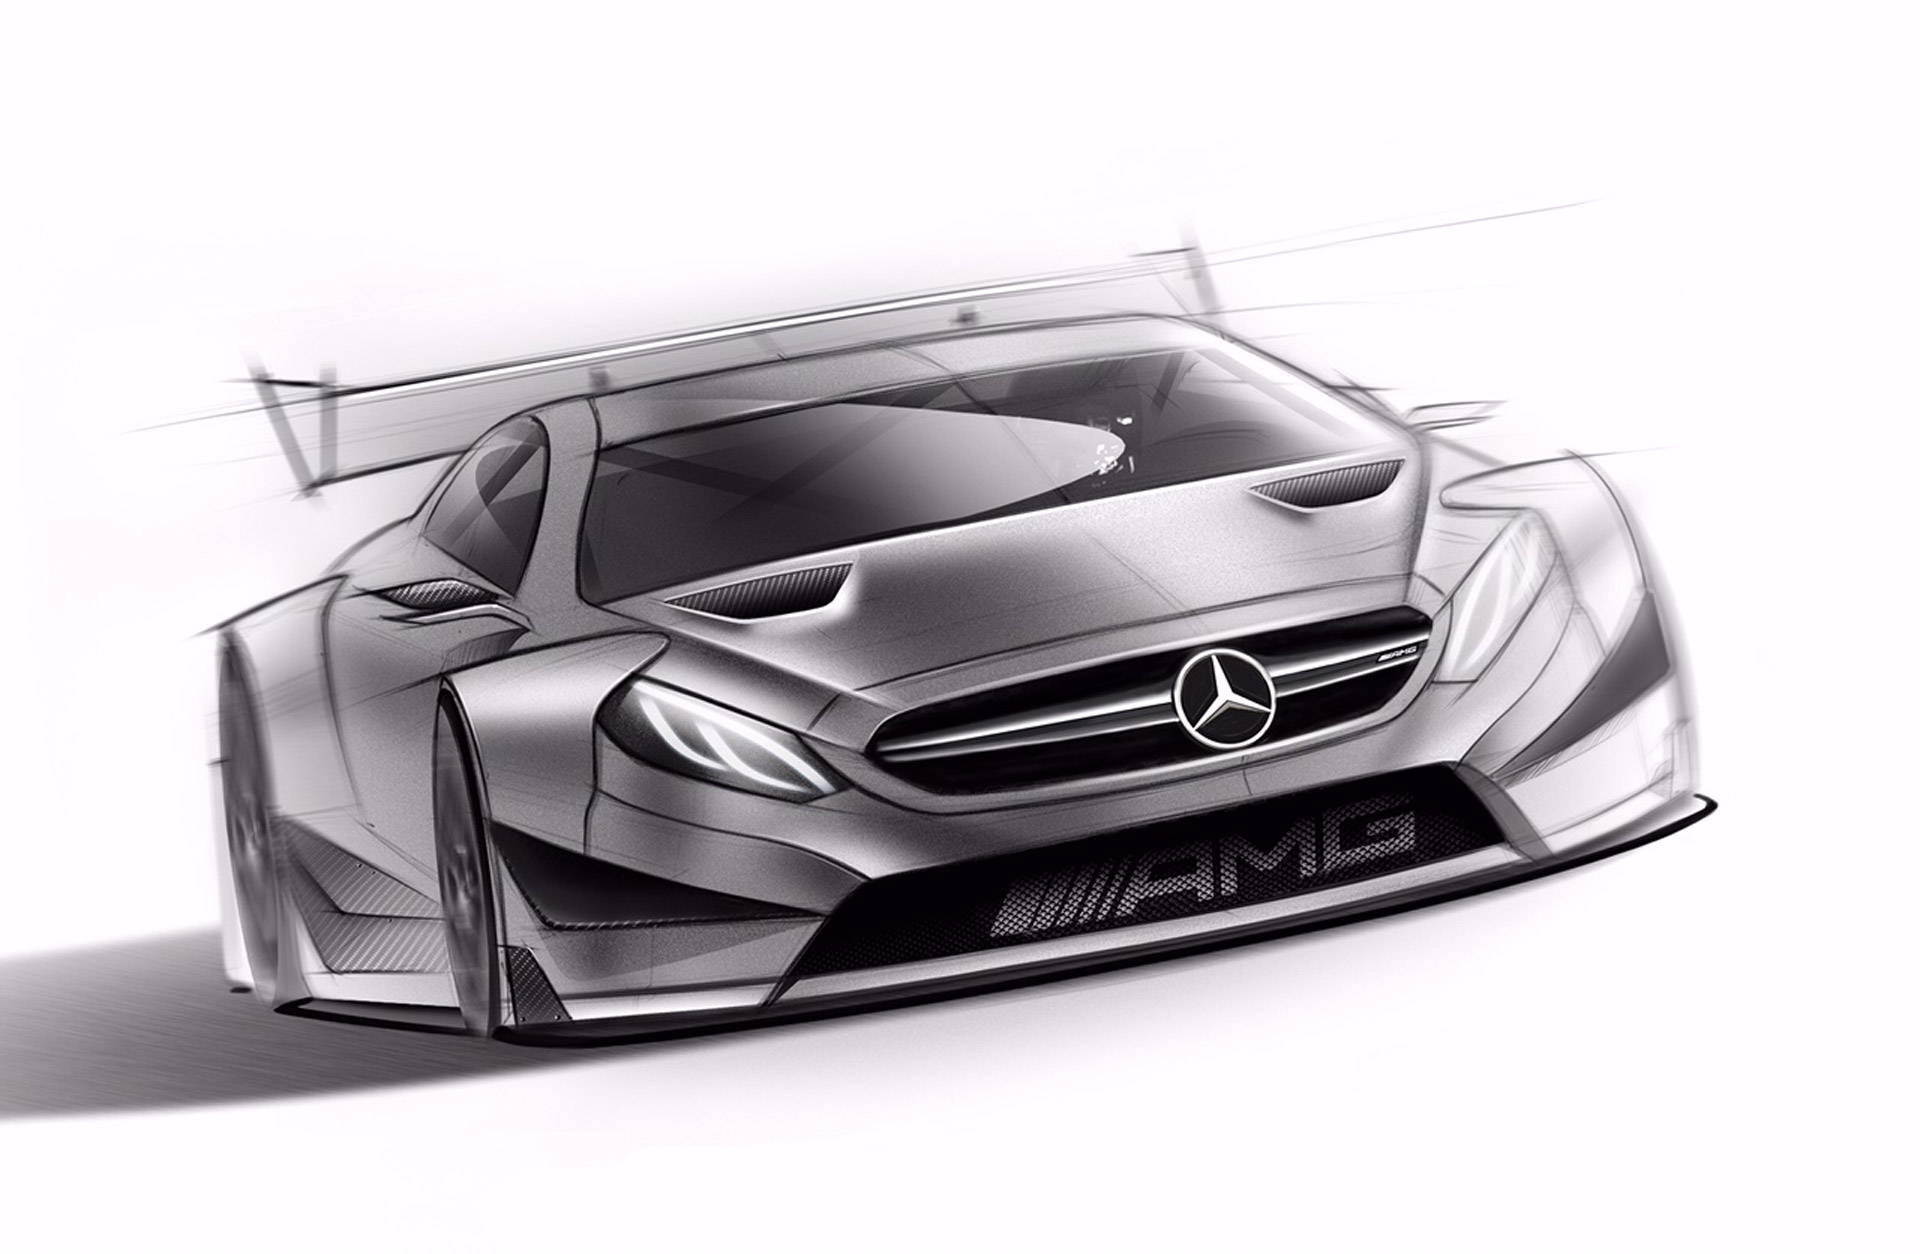 Mercedes-AMG Teases 2016 DTM Racer Based On New C63 Coupe